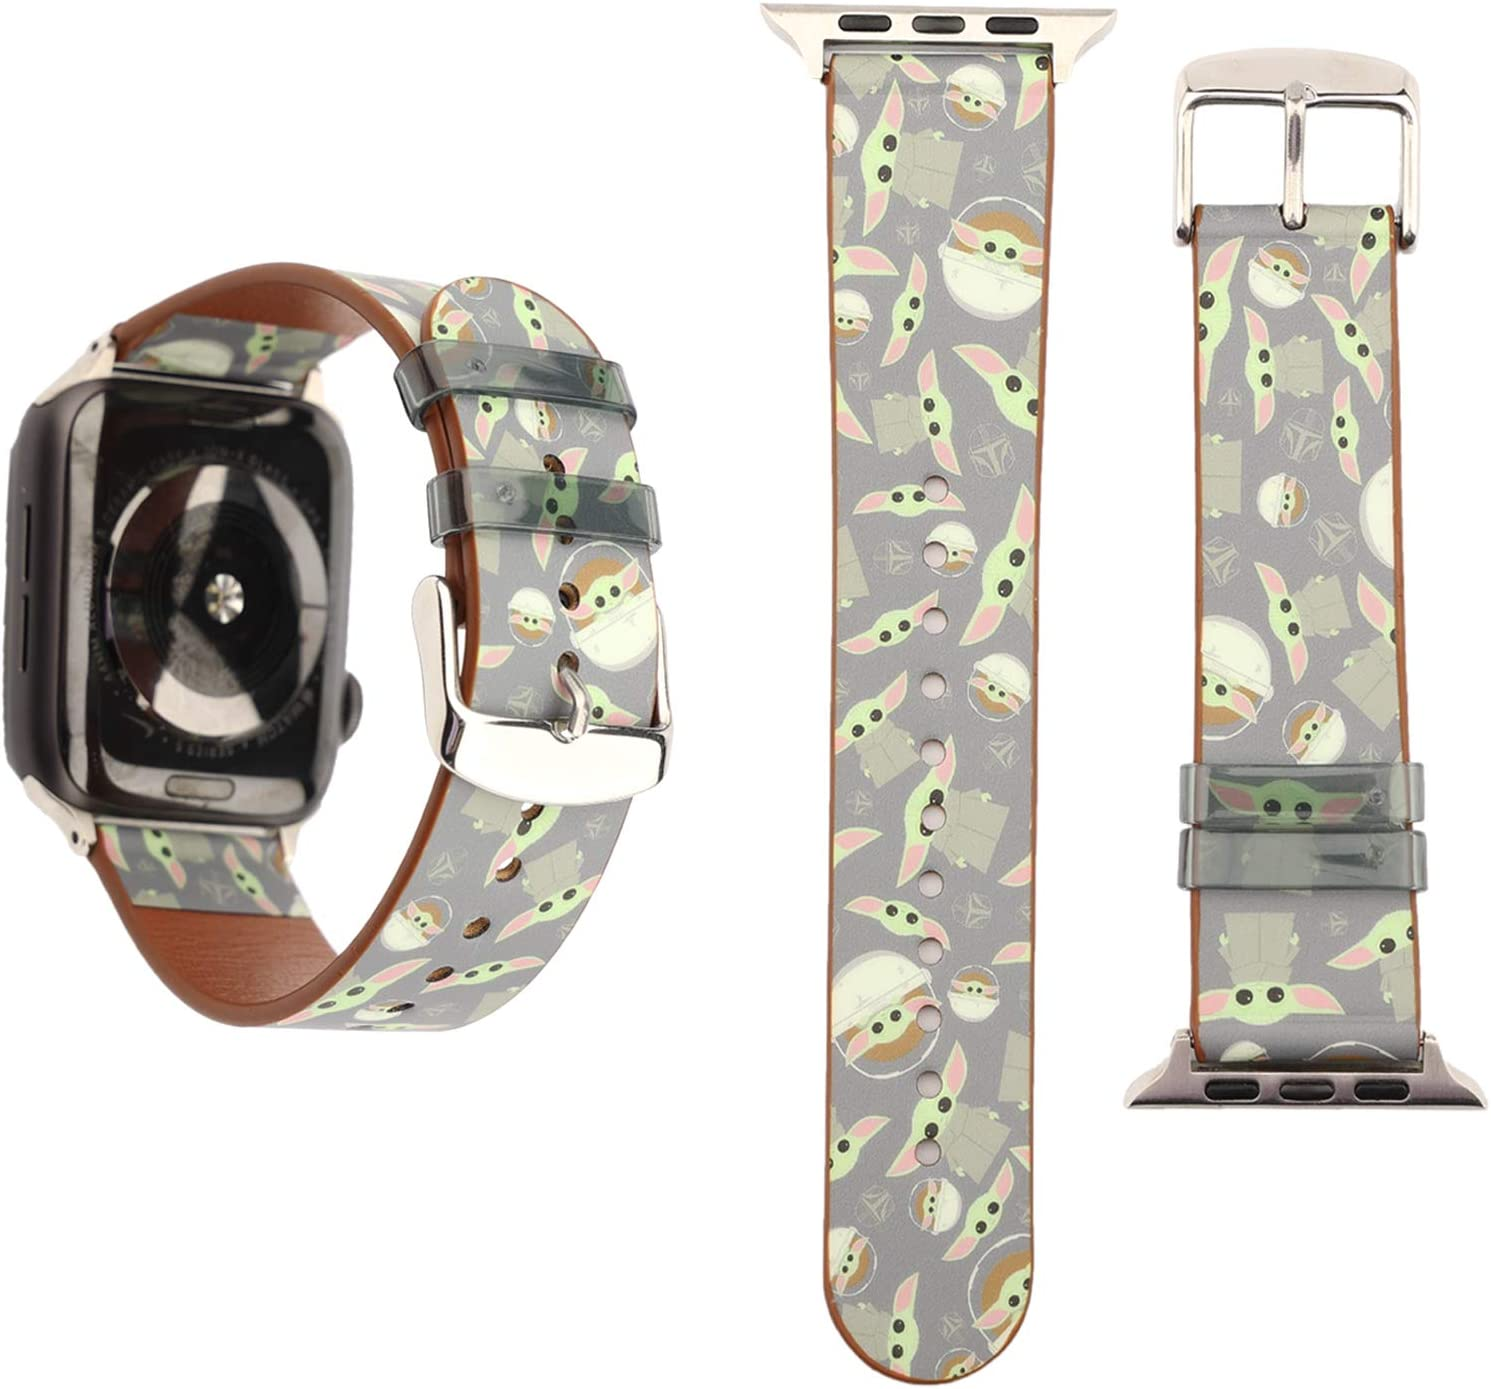 YSNUO Compatible with Apple iWatch Band 42mm 44mm, Soft Leather for Baby Yoda Watch Band Replacement Strap Women Men for iWatch Series 5 4 3 2 1 + Silver Adapter